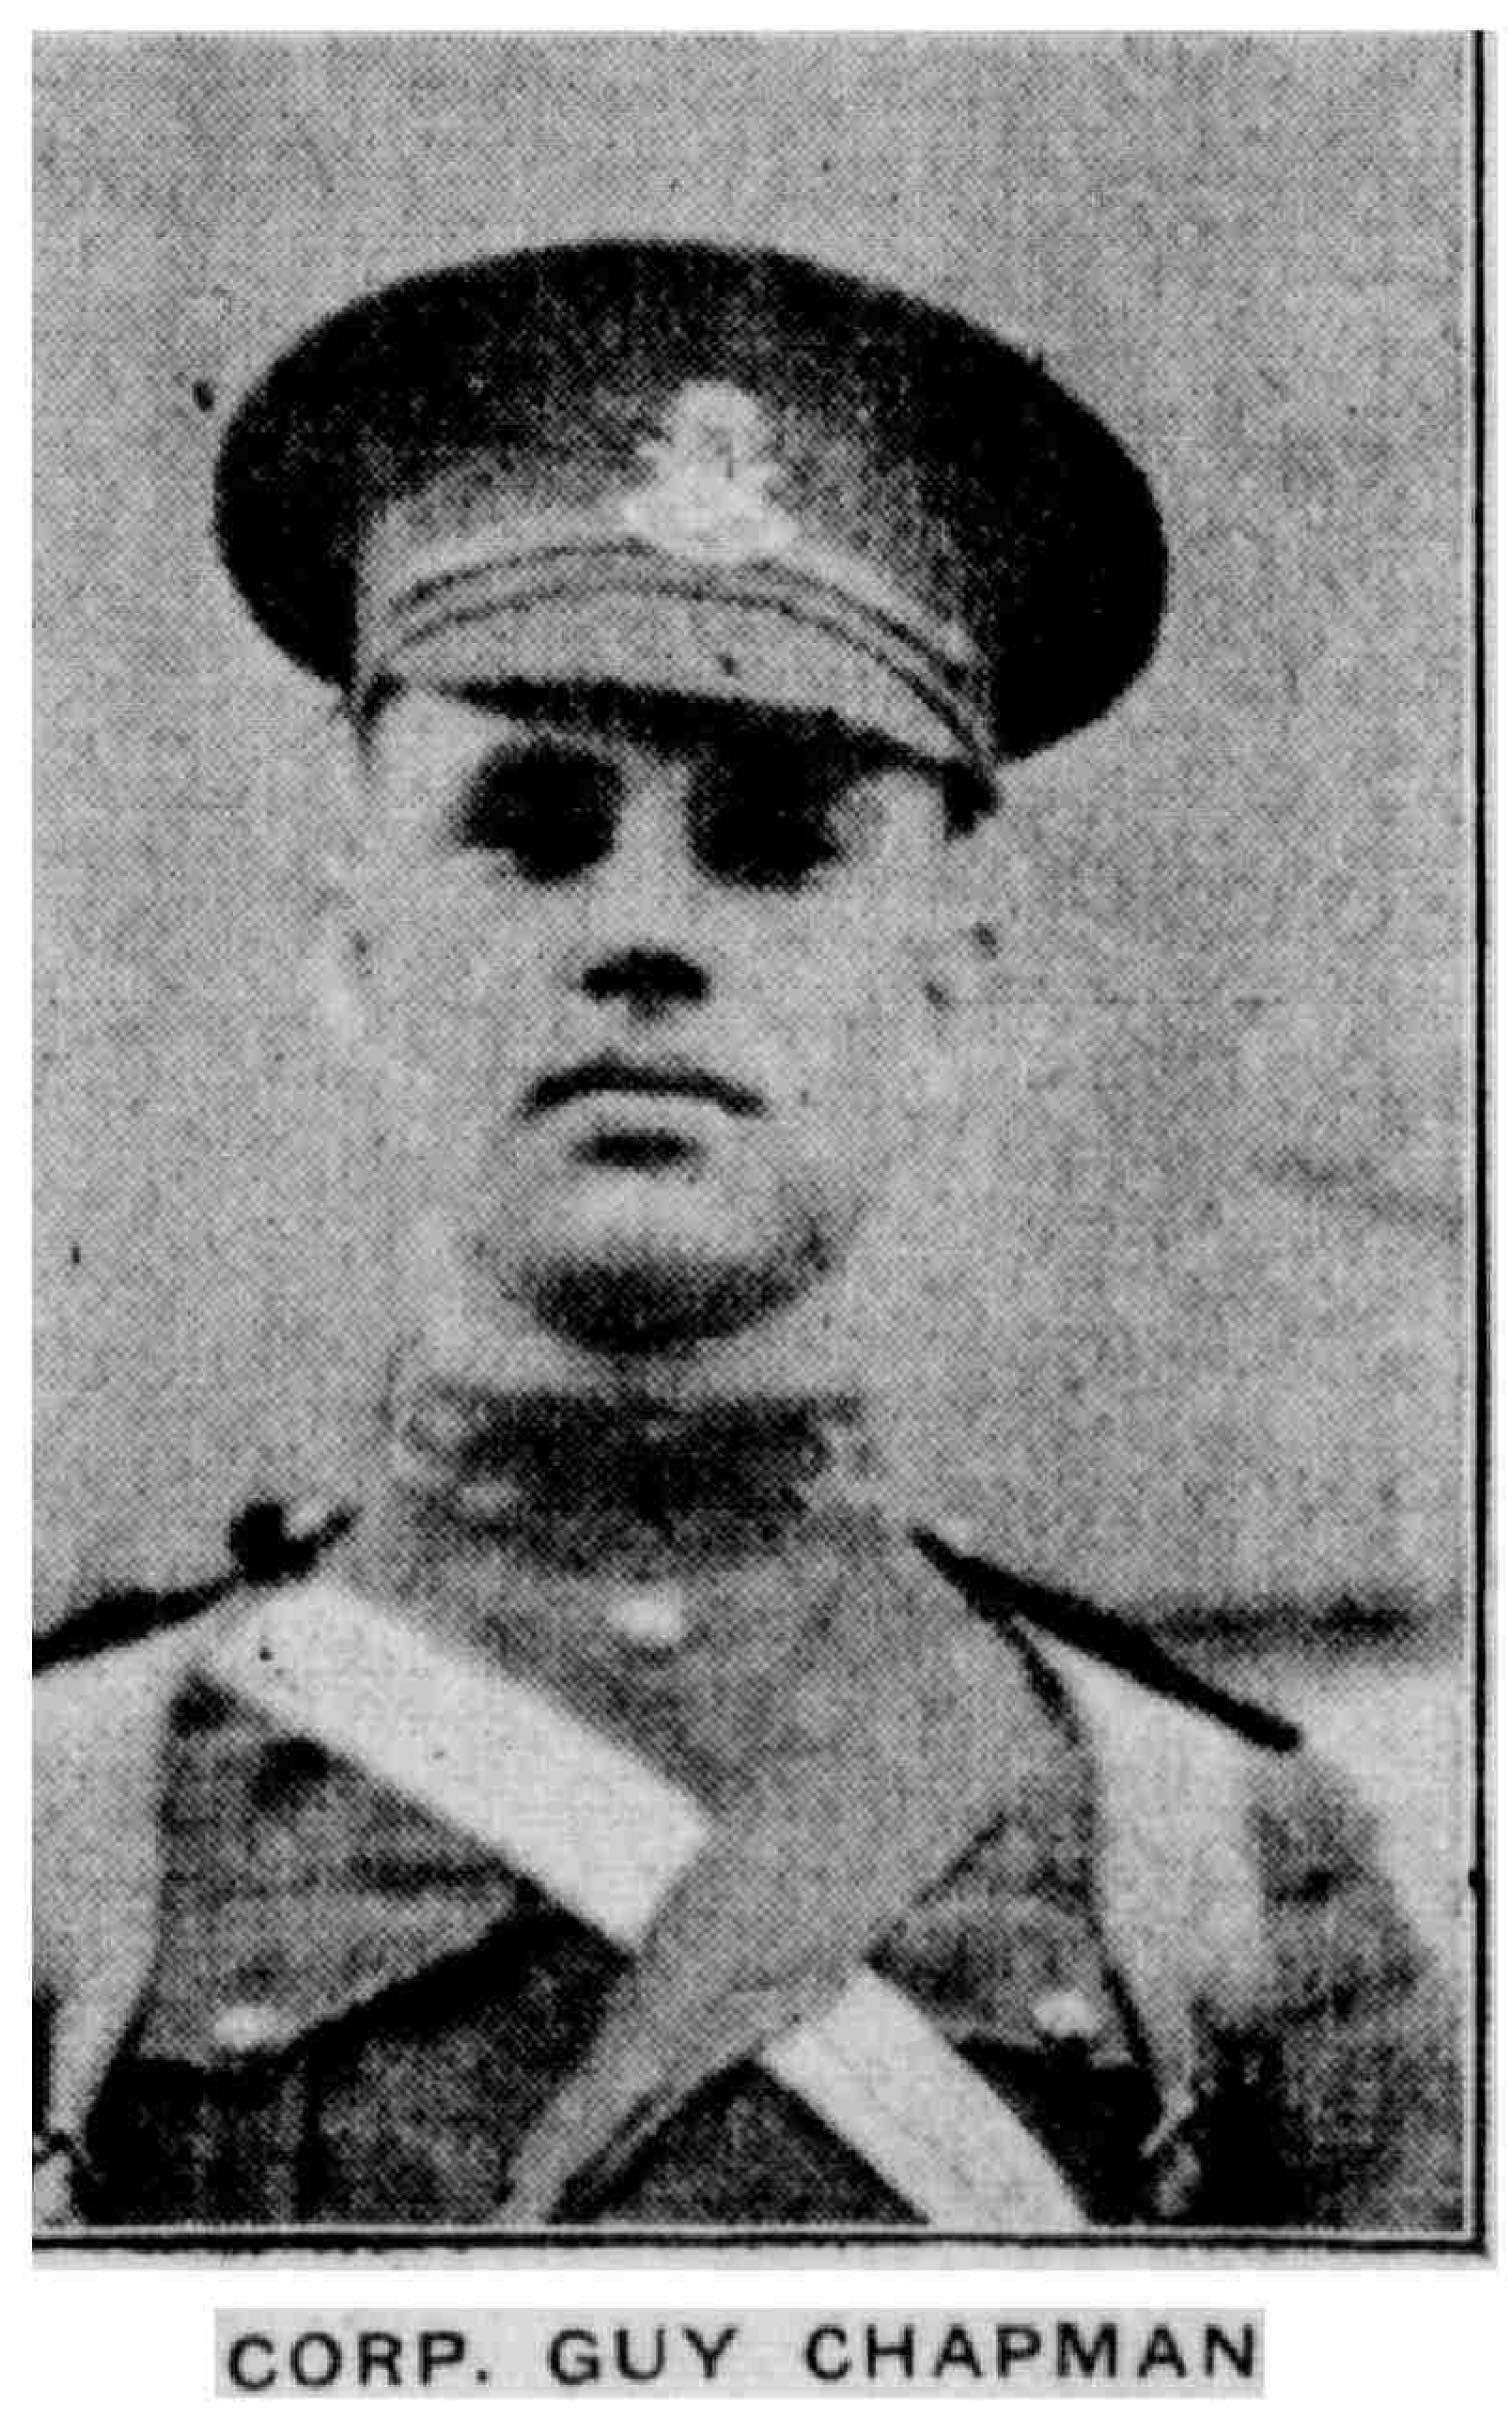 Newspaper Clipping– Photograph of Cpl Guy Chapman published in the Brandon Daily Sun (17 May 1915). (Source: manitobia.ca)